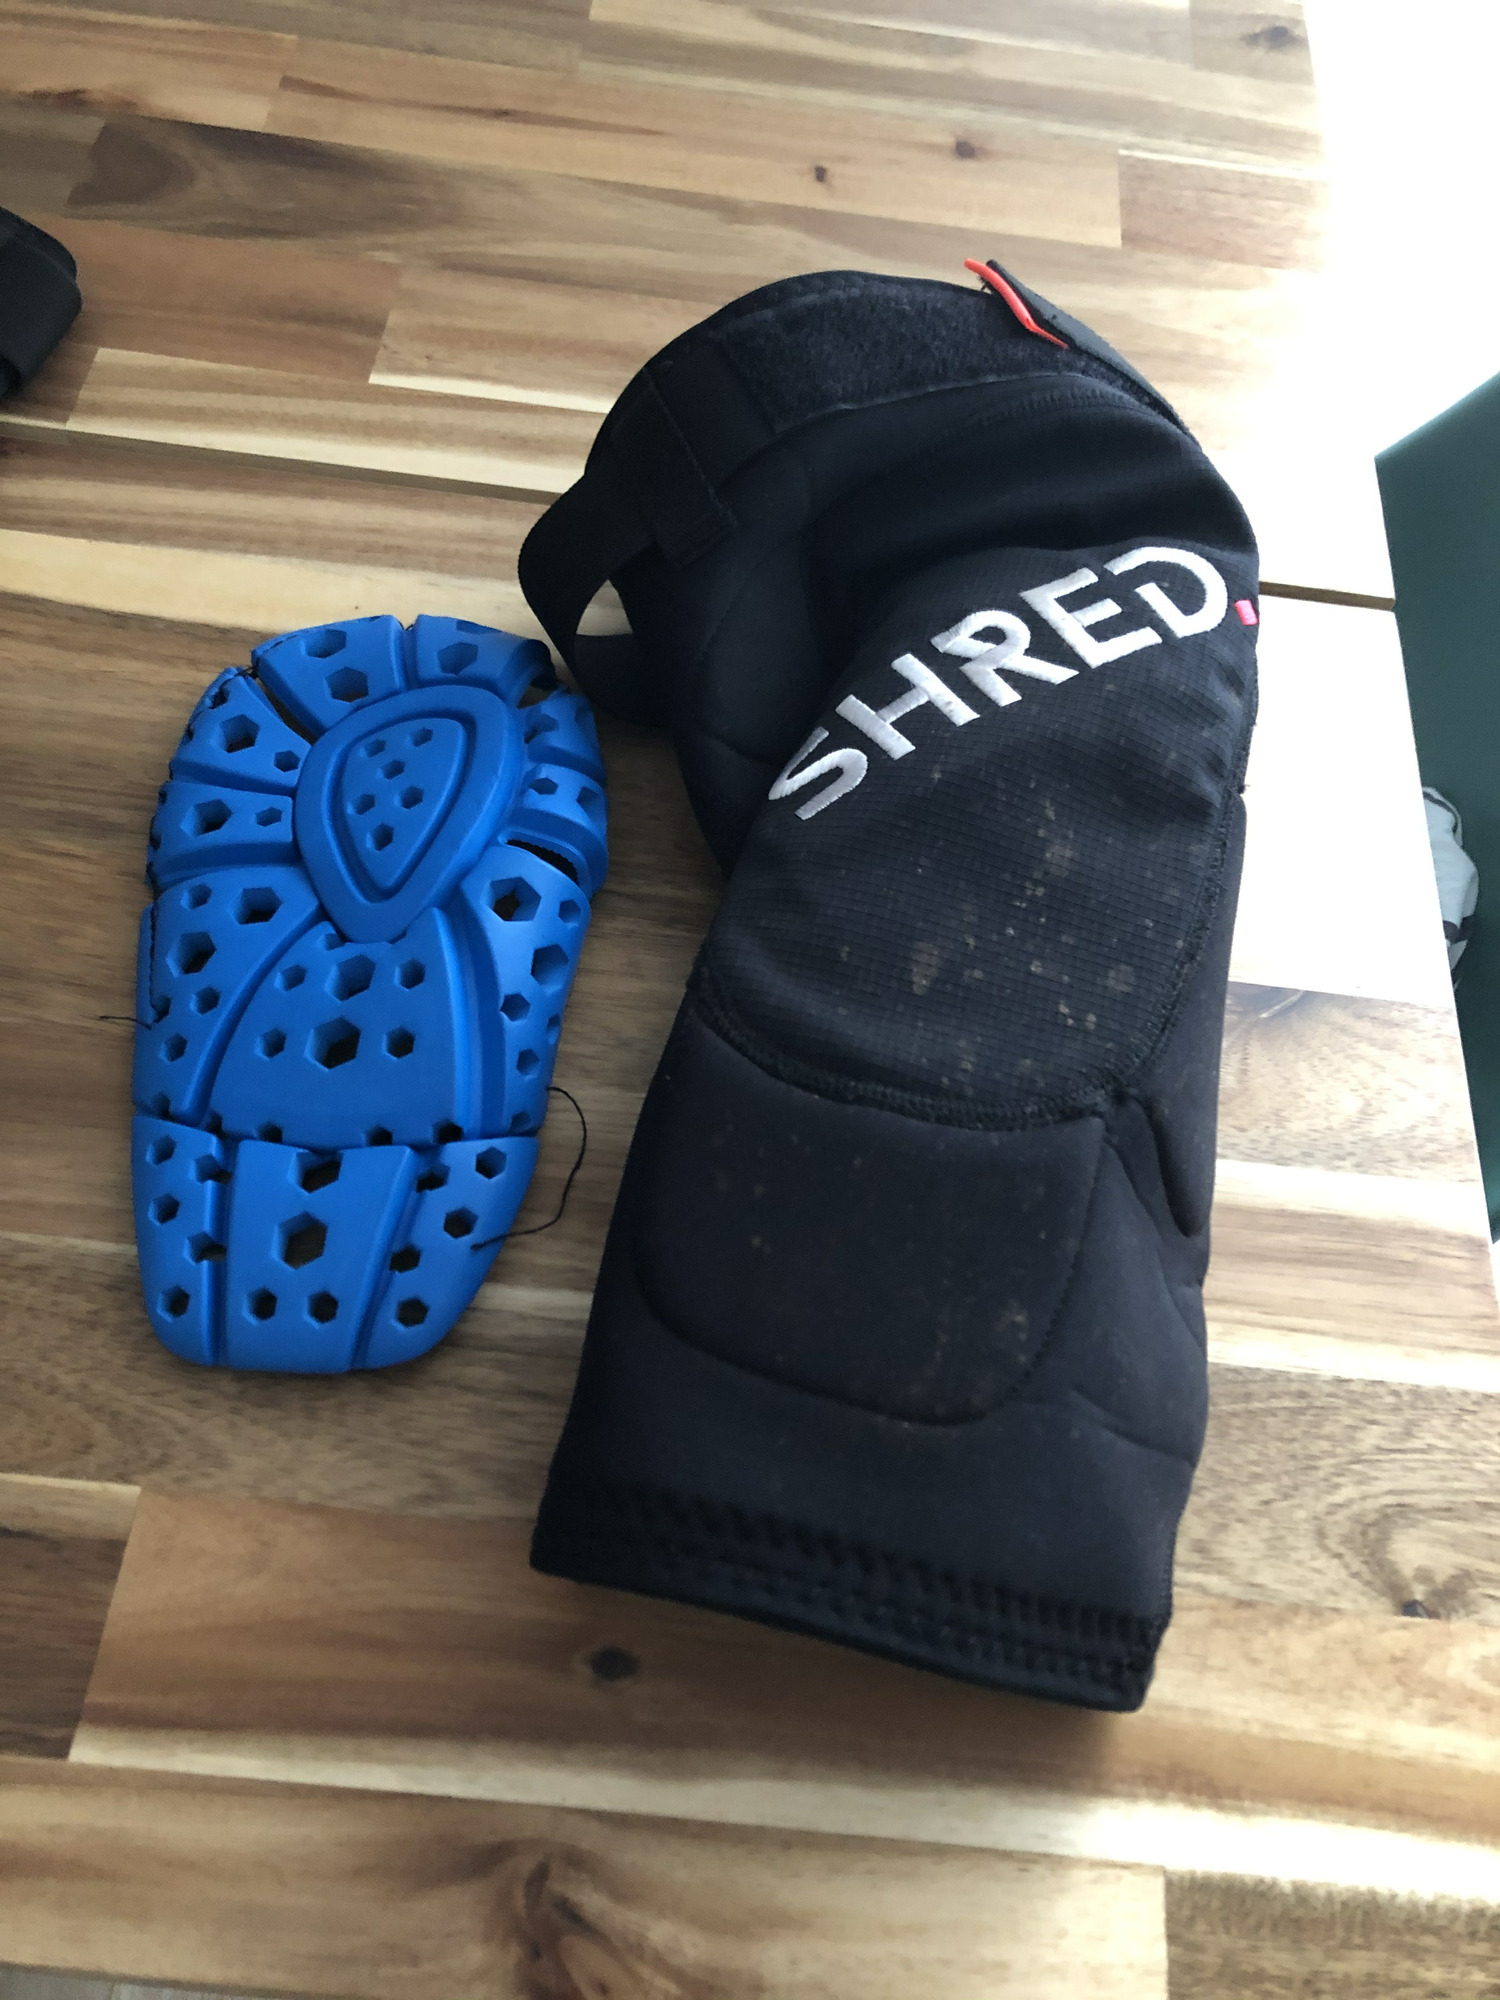 Shred. Flexi Knee pads Enduro